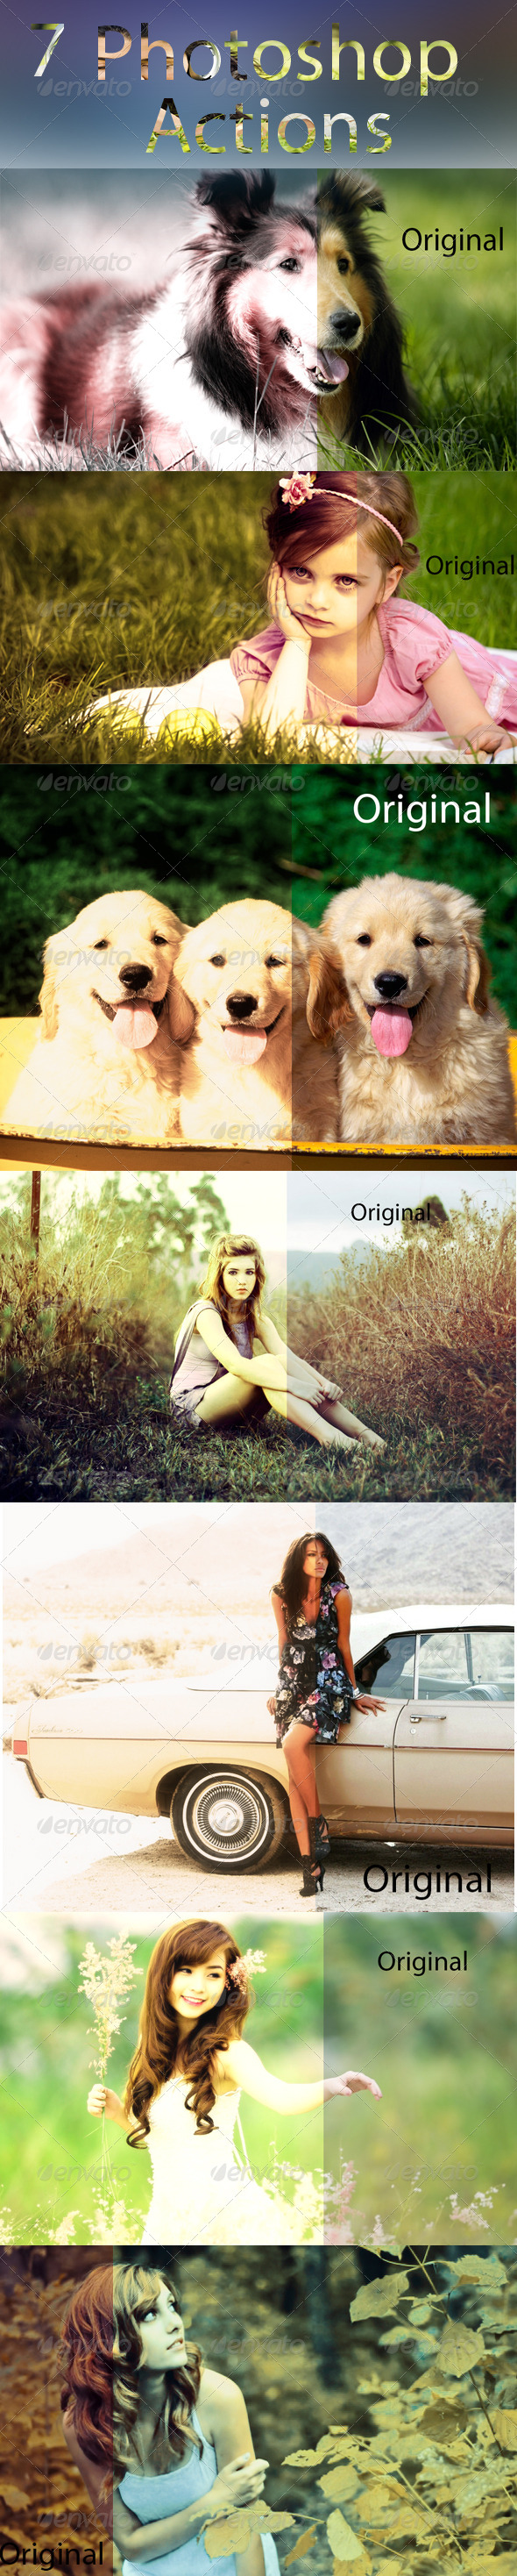 GraphicRiver 7 Photoshop Actions 7520631